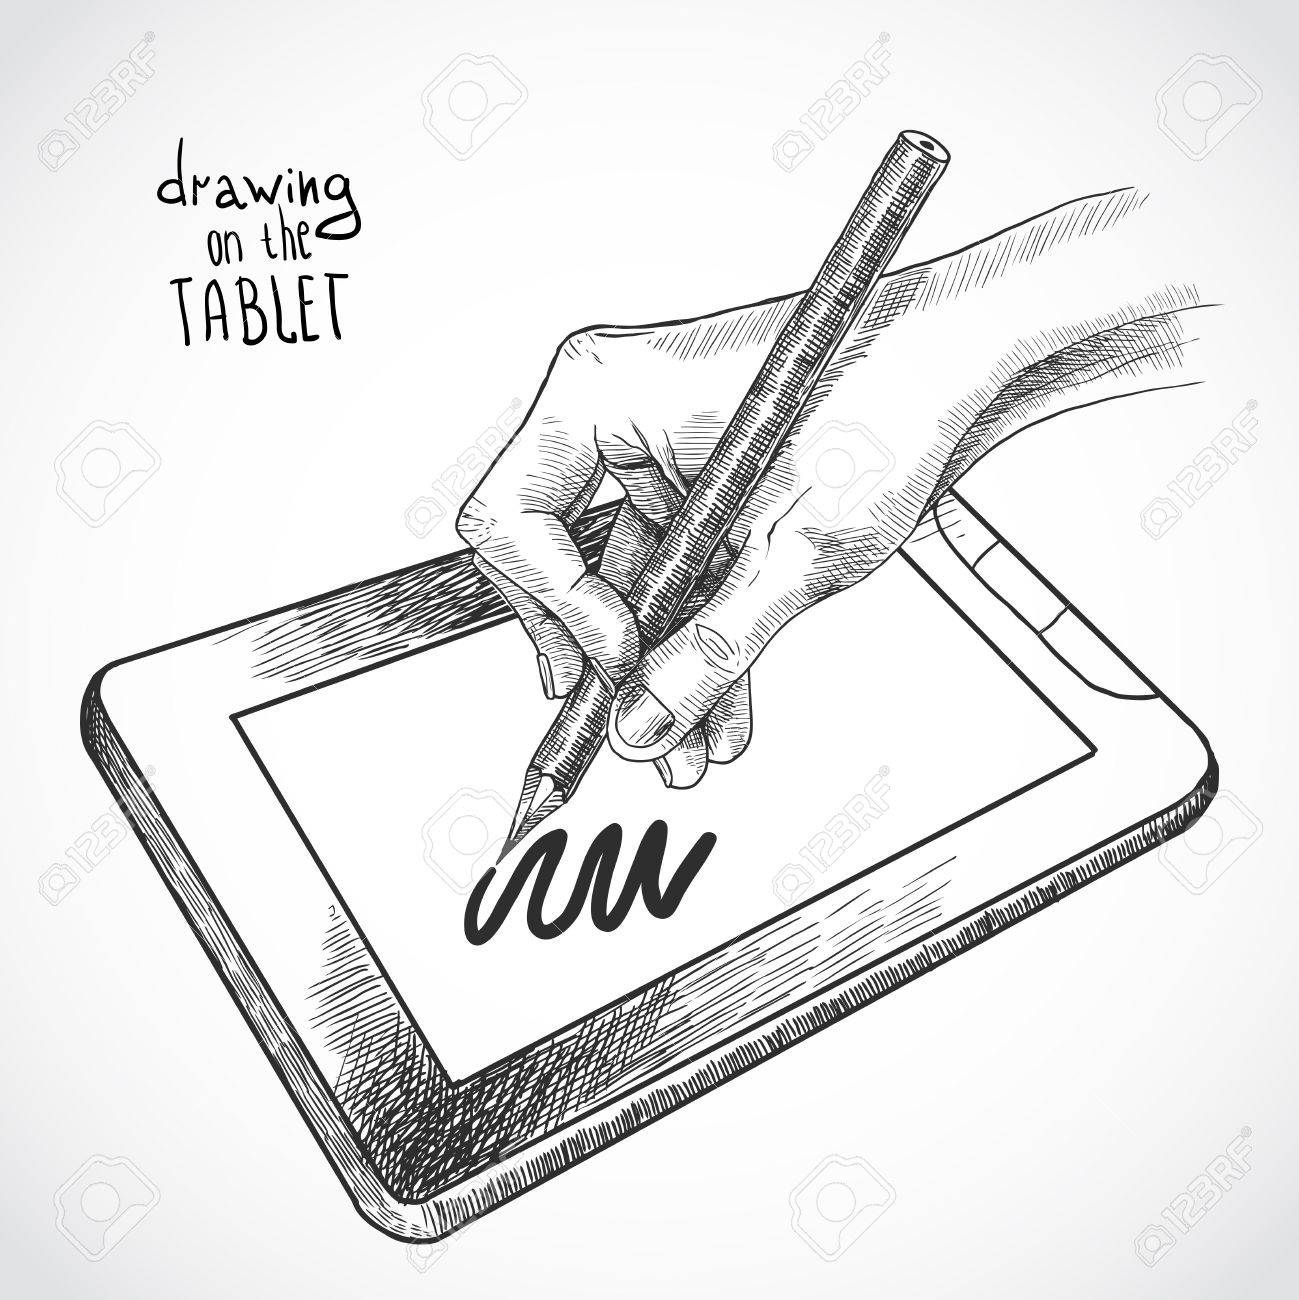 1299x1300 Hand Drawing On The Tablet With Graphite Pencil Sketch Isolated